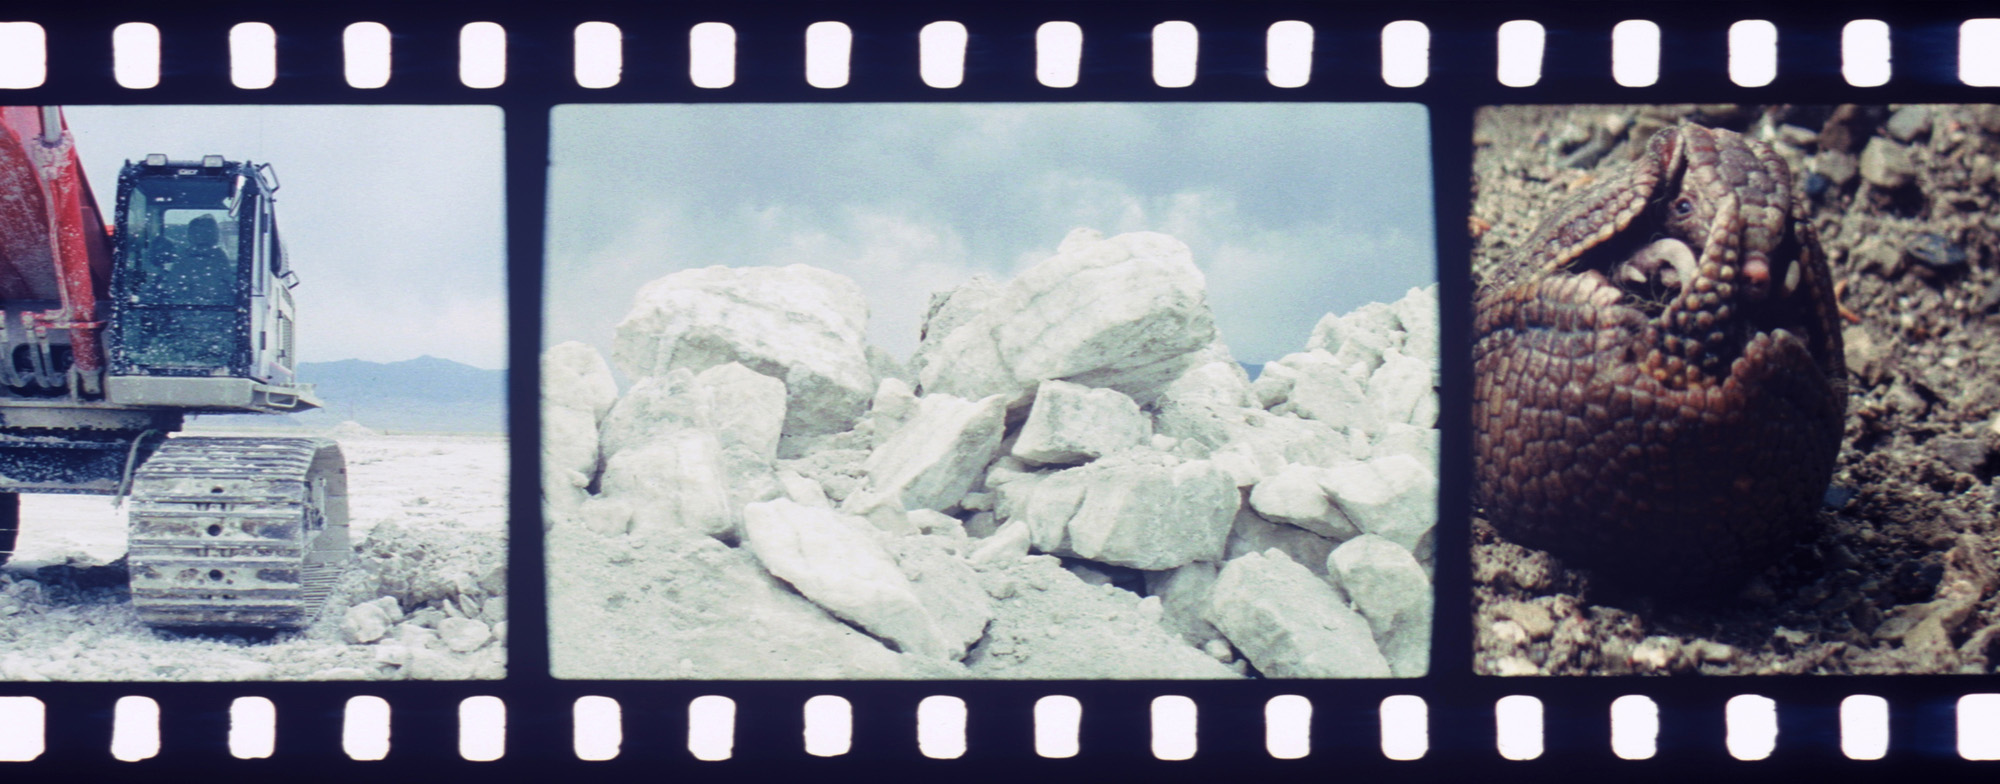 Tacita Dean, <em>JG</em>, 2013. Anamorphic 35mm film, color and black and white, optical sound. 26 1/2 min. Courtesy of the artist and Marian Goodman Gallery, New York/Paris, and Frith Street Gallery, London.